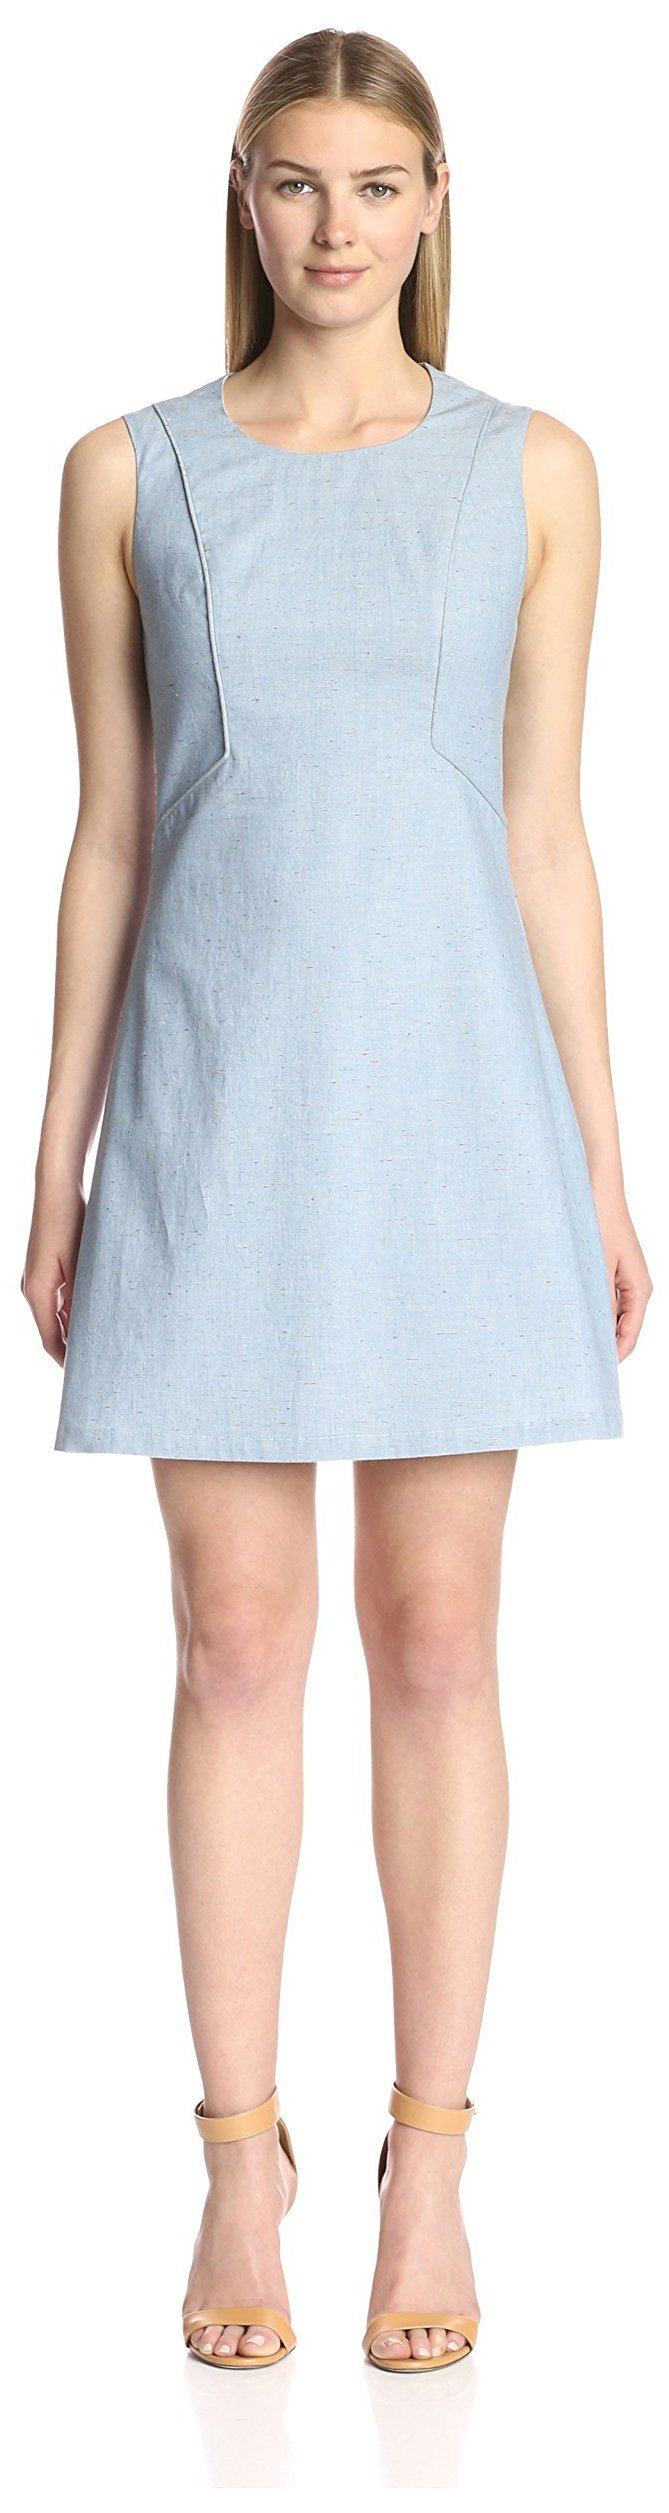 Available at Amazon: JB by Julie Brown Women's Fit and Flare Dress